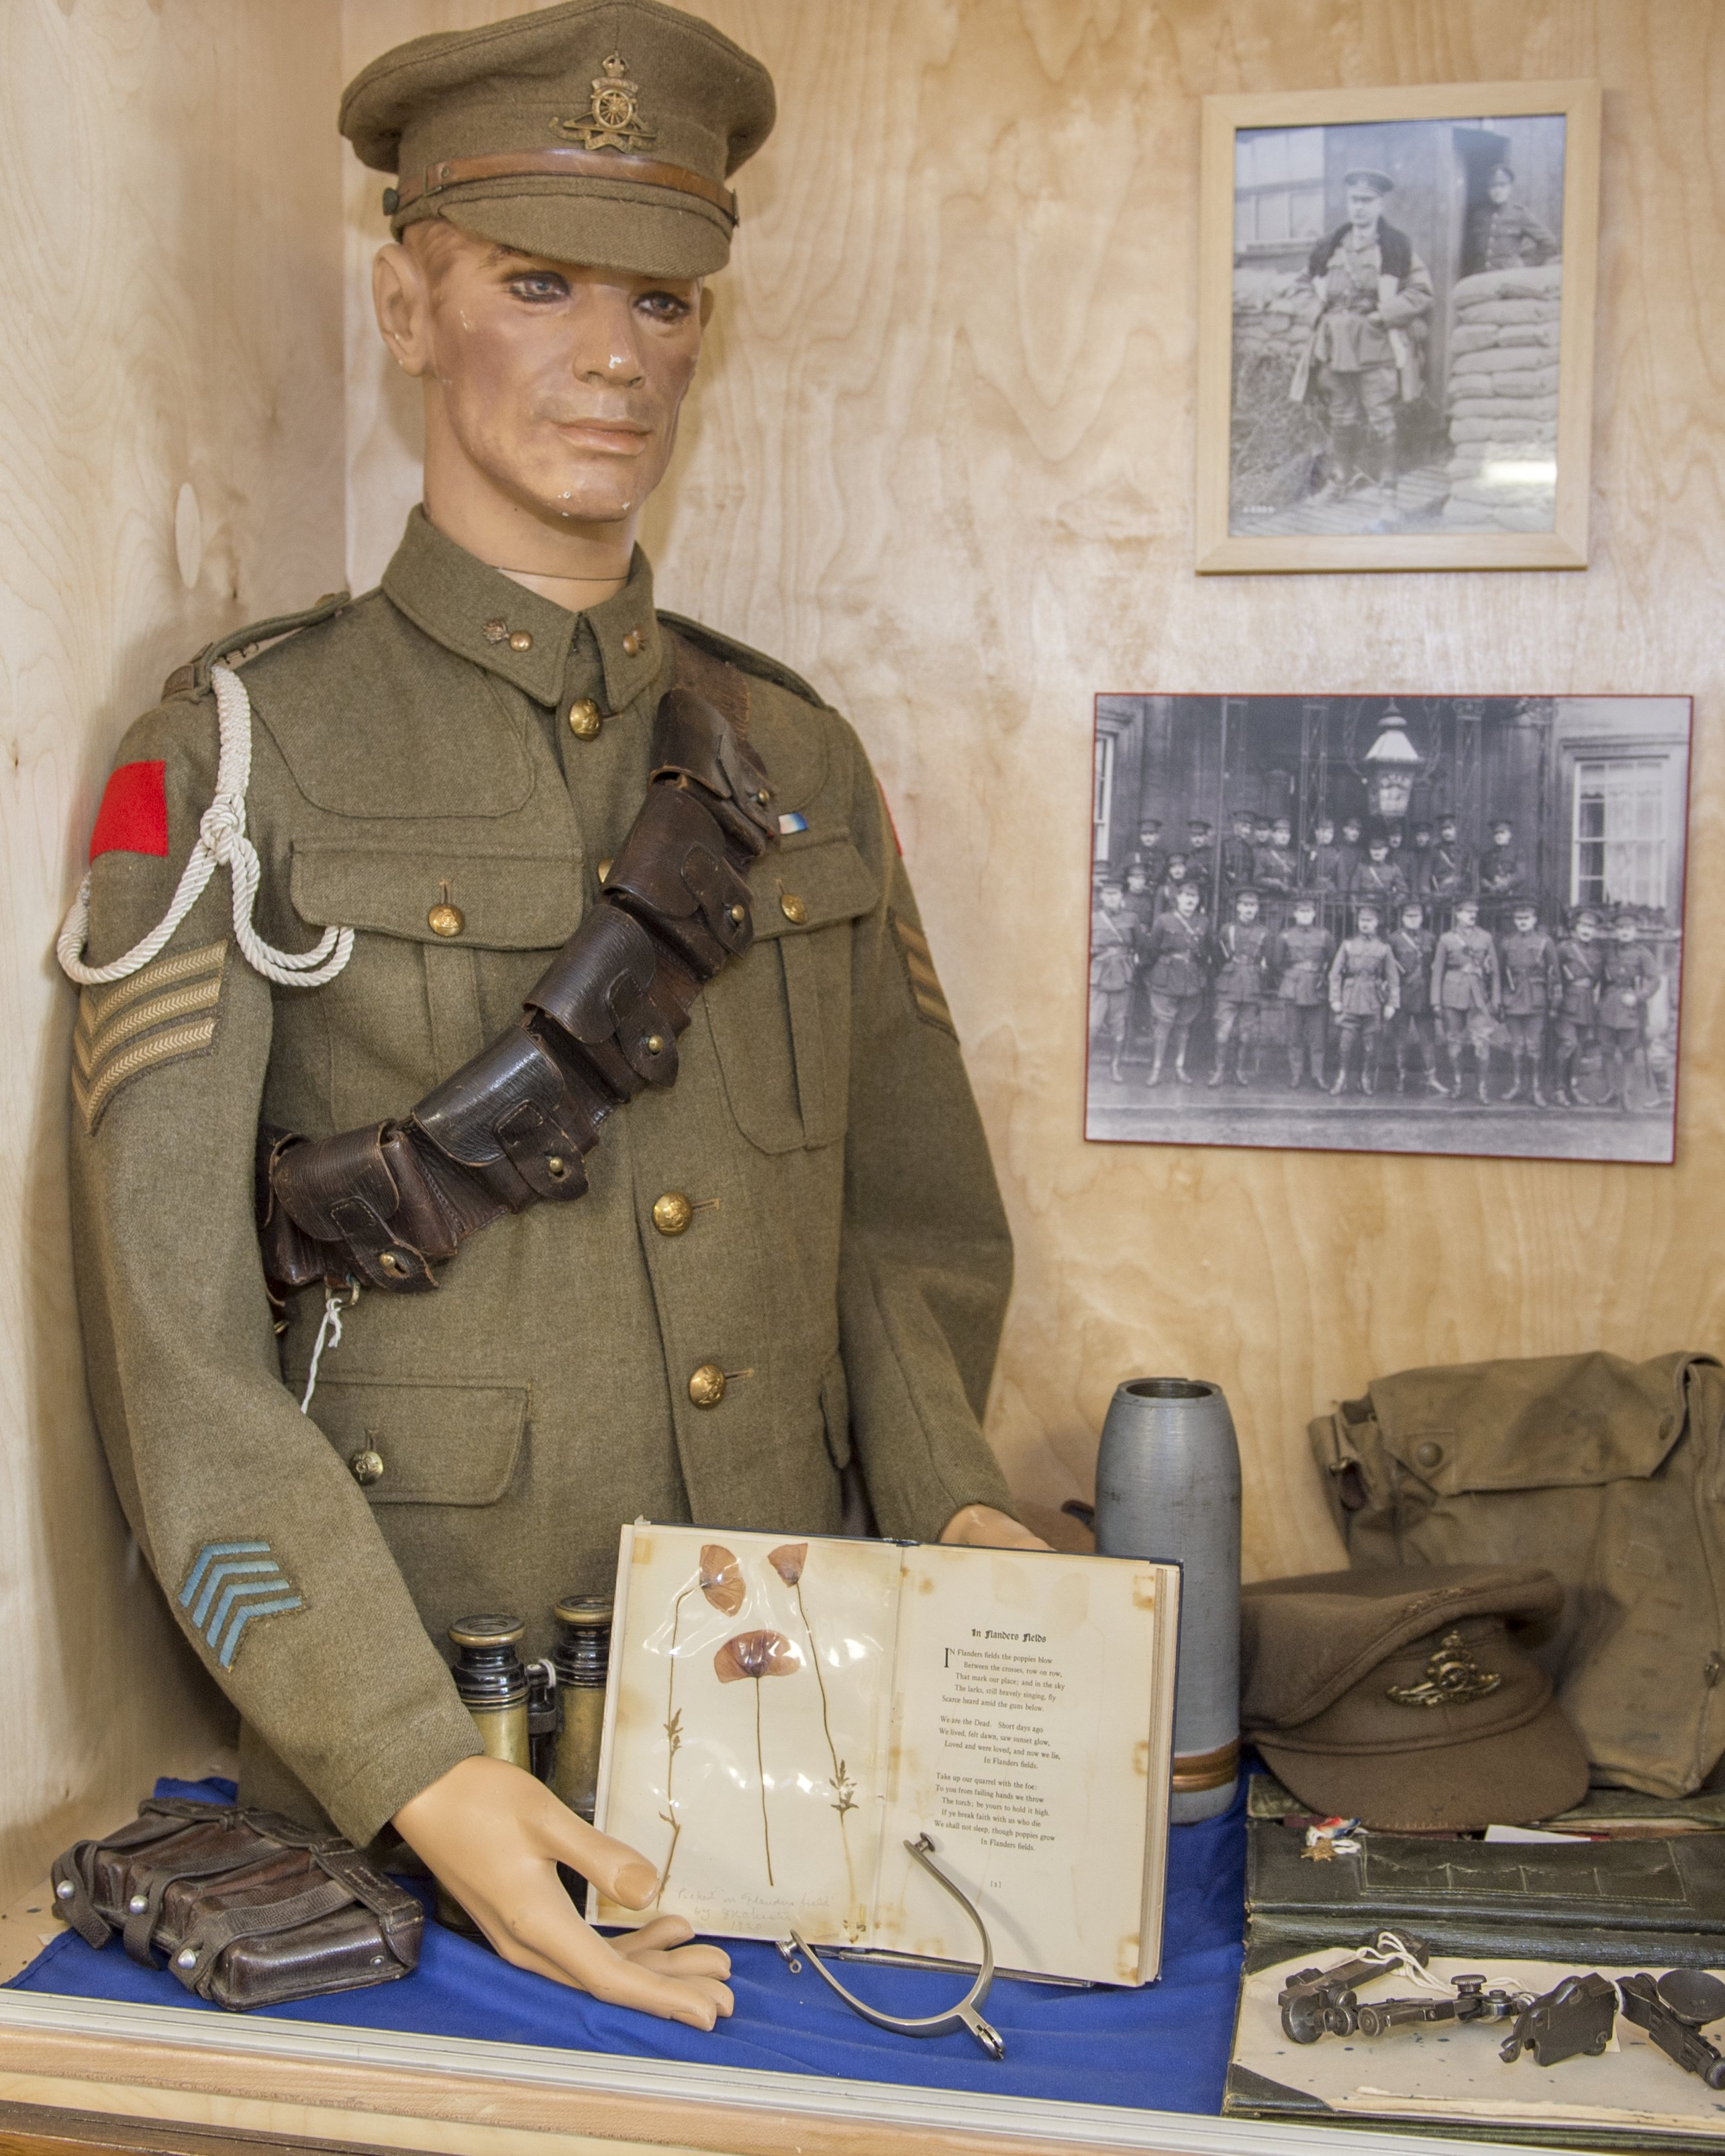 A museum display containing military artifacts from the First World War.